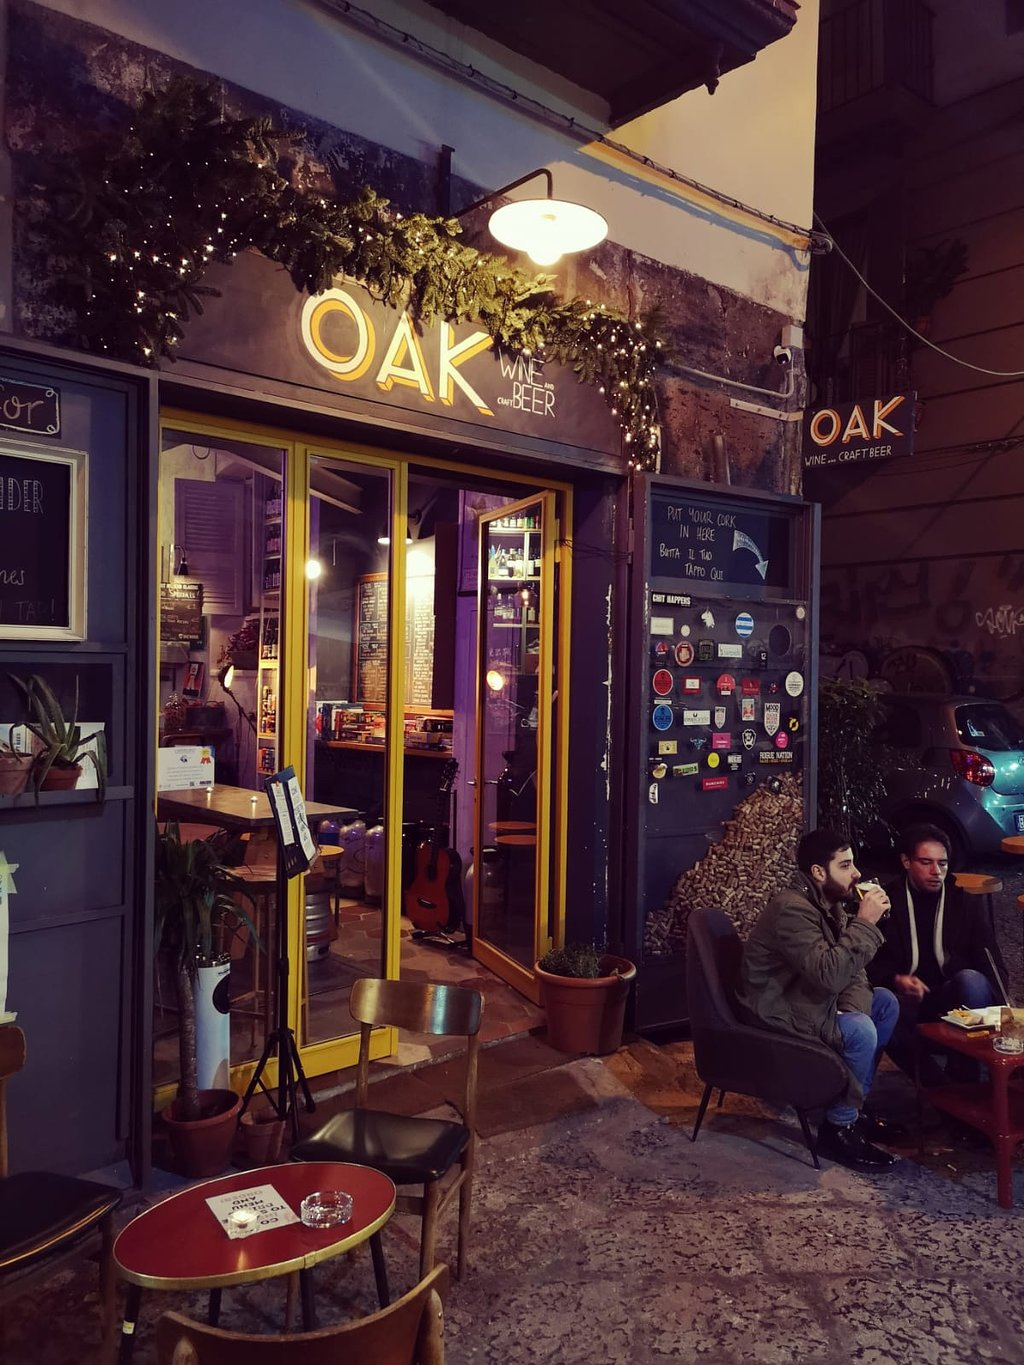 Oak Wine And Craft Beer Bar, Napoli